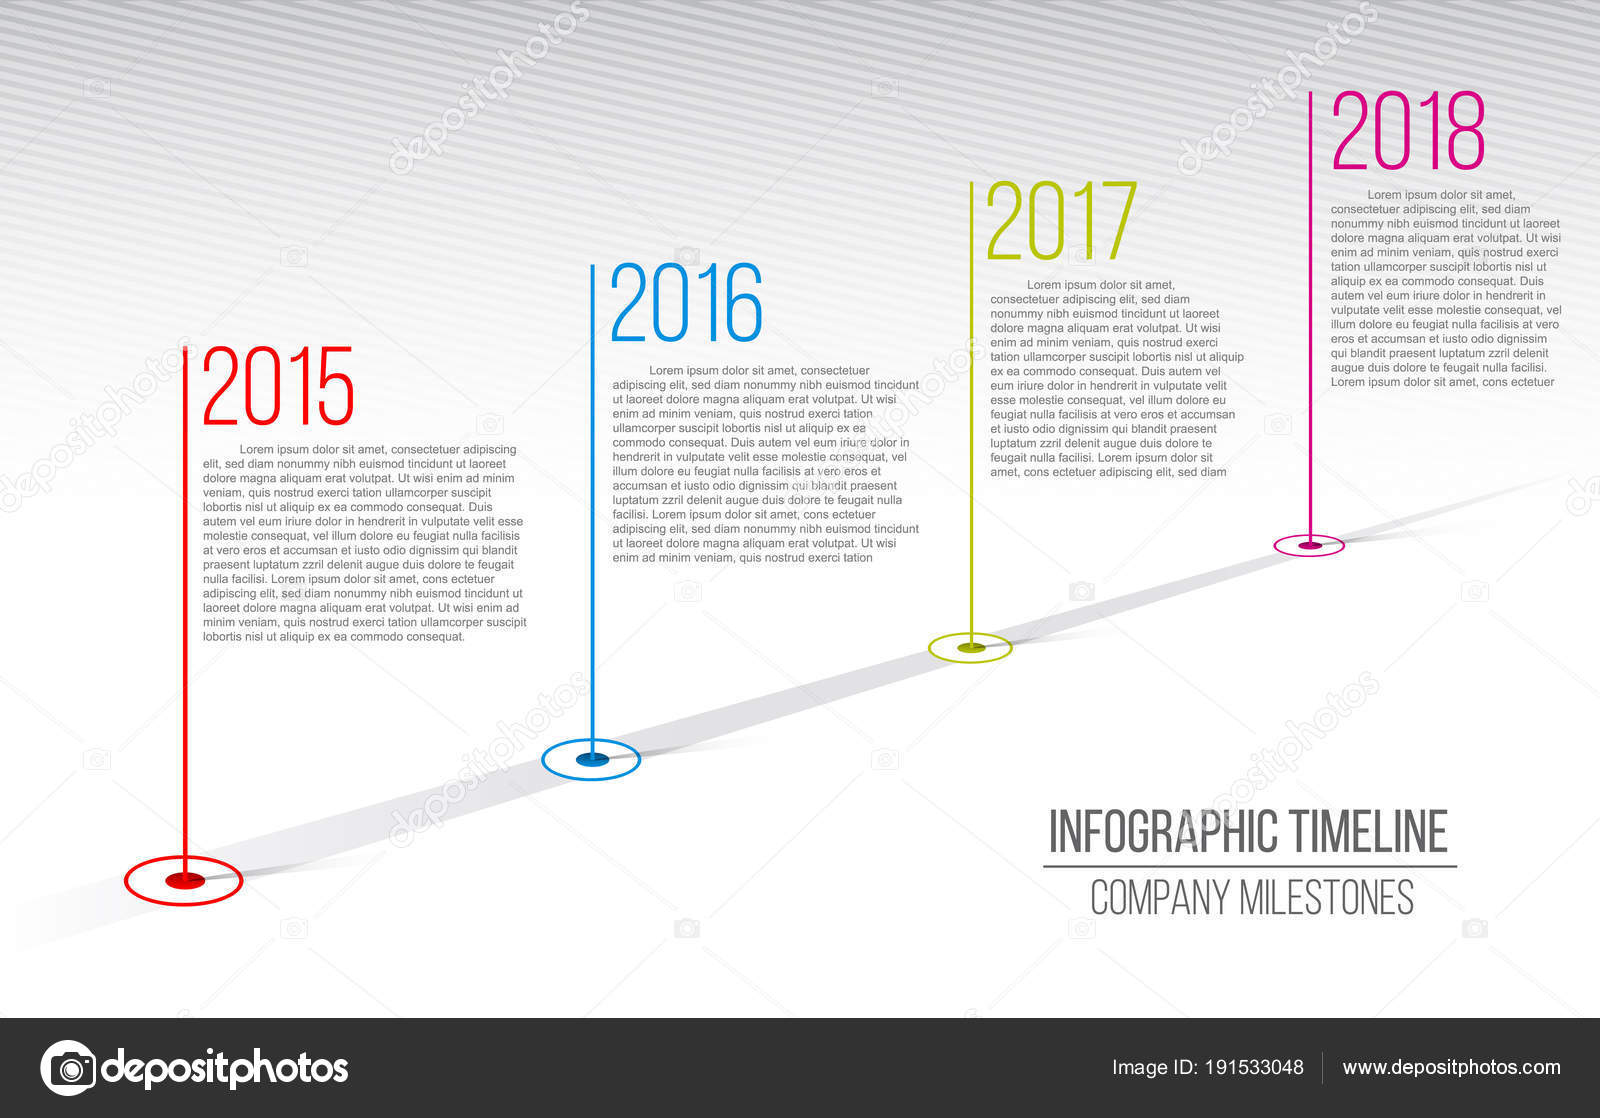 Creative vector illustration of company milestones timeline     Creative vector illustration of company milestones timeline  Template with  pointers  Curved road line art design with information placeholders